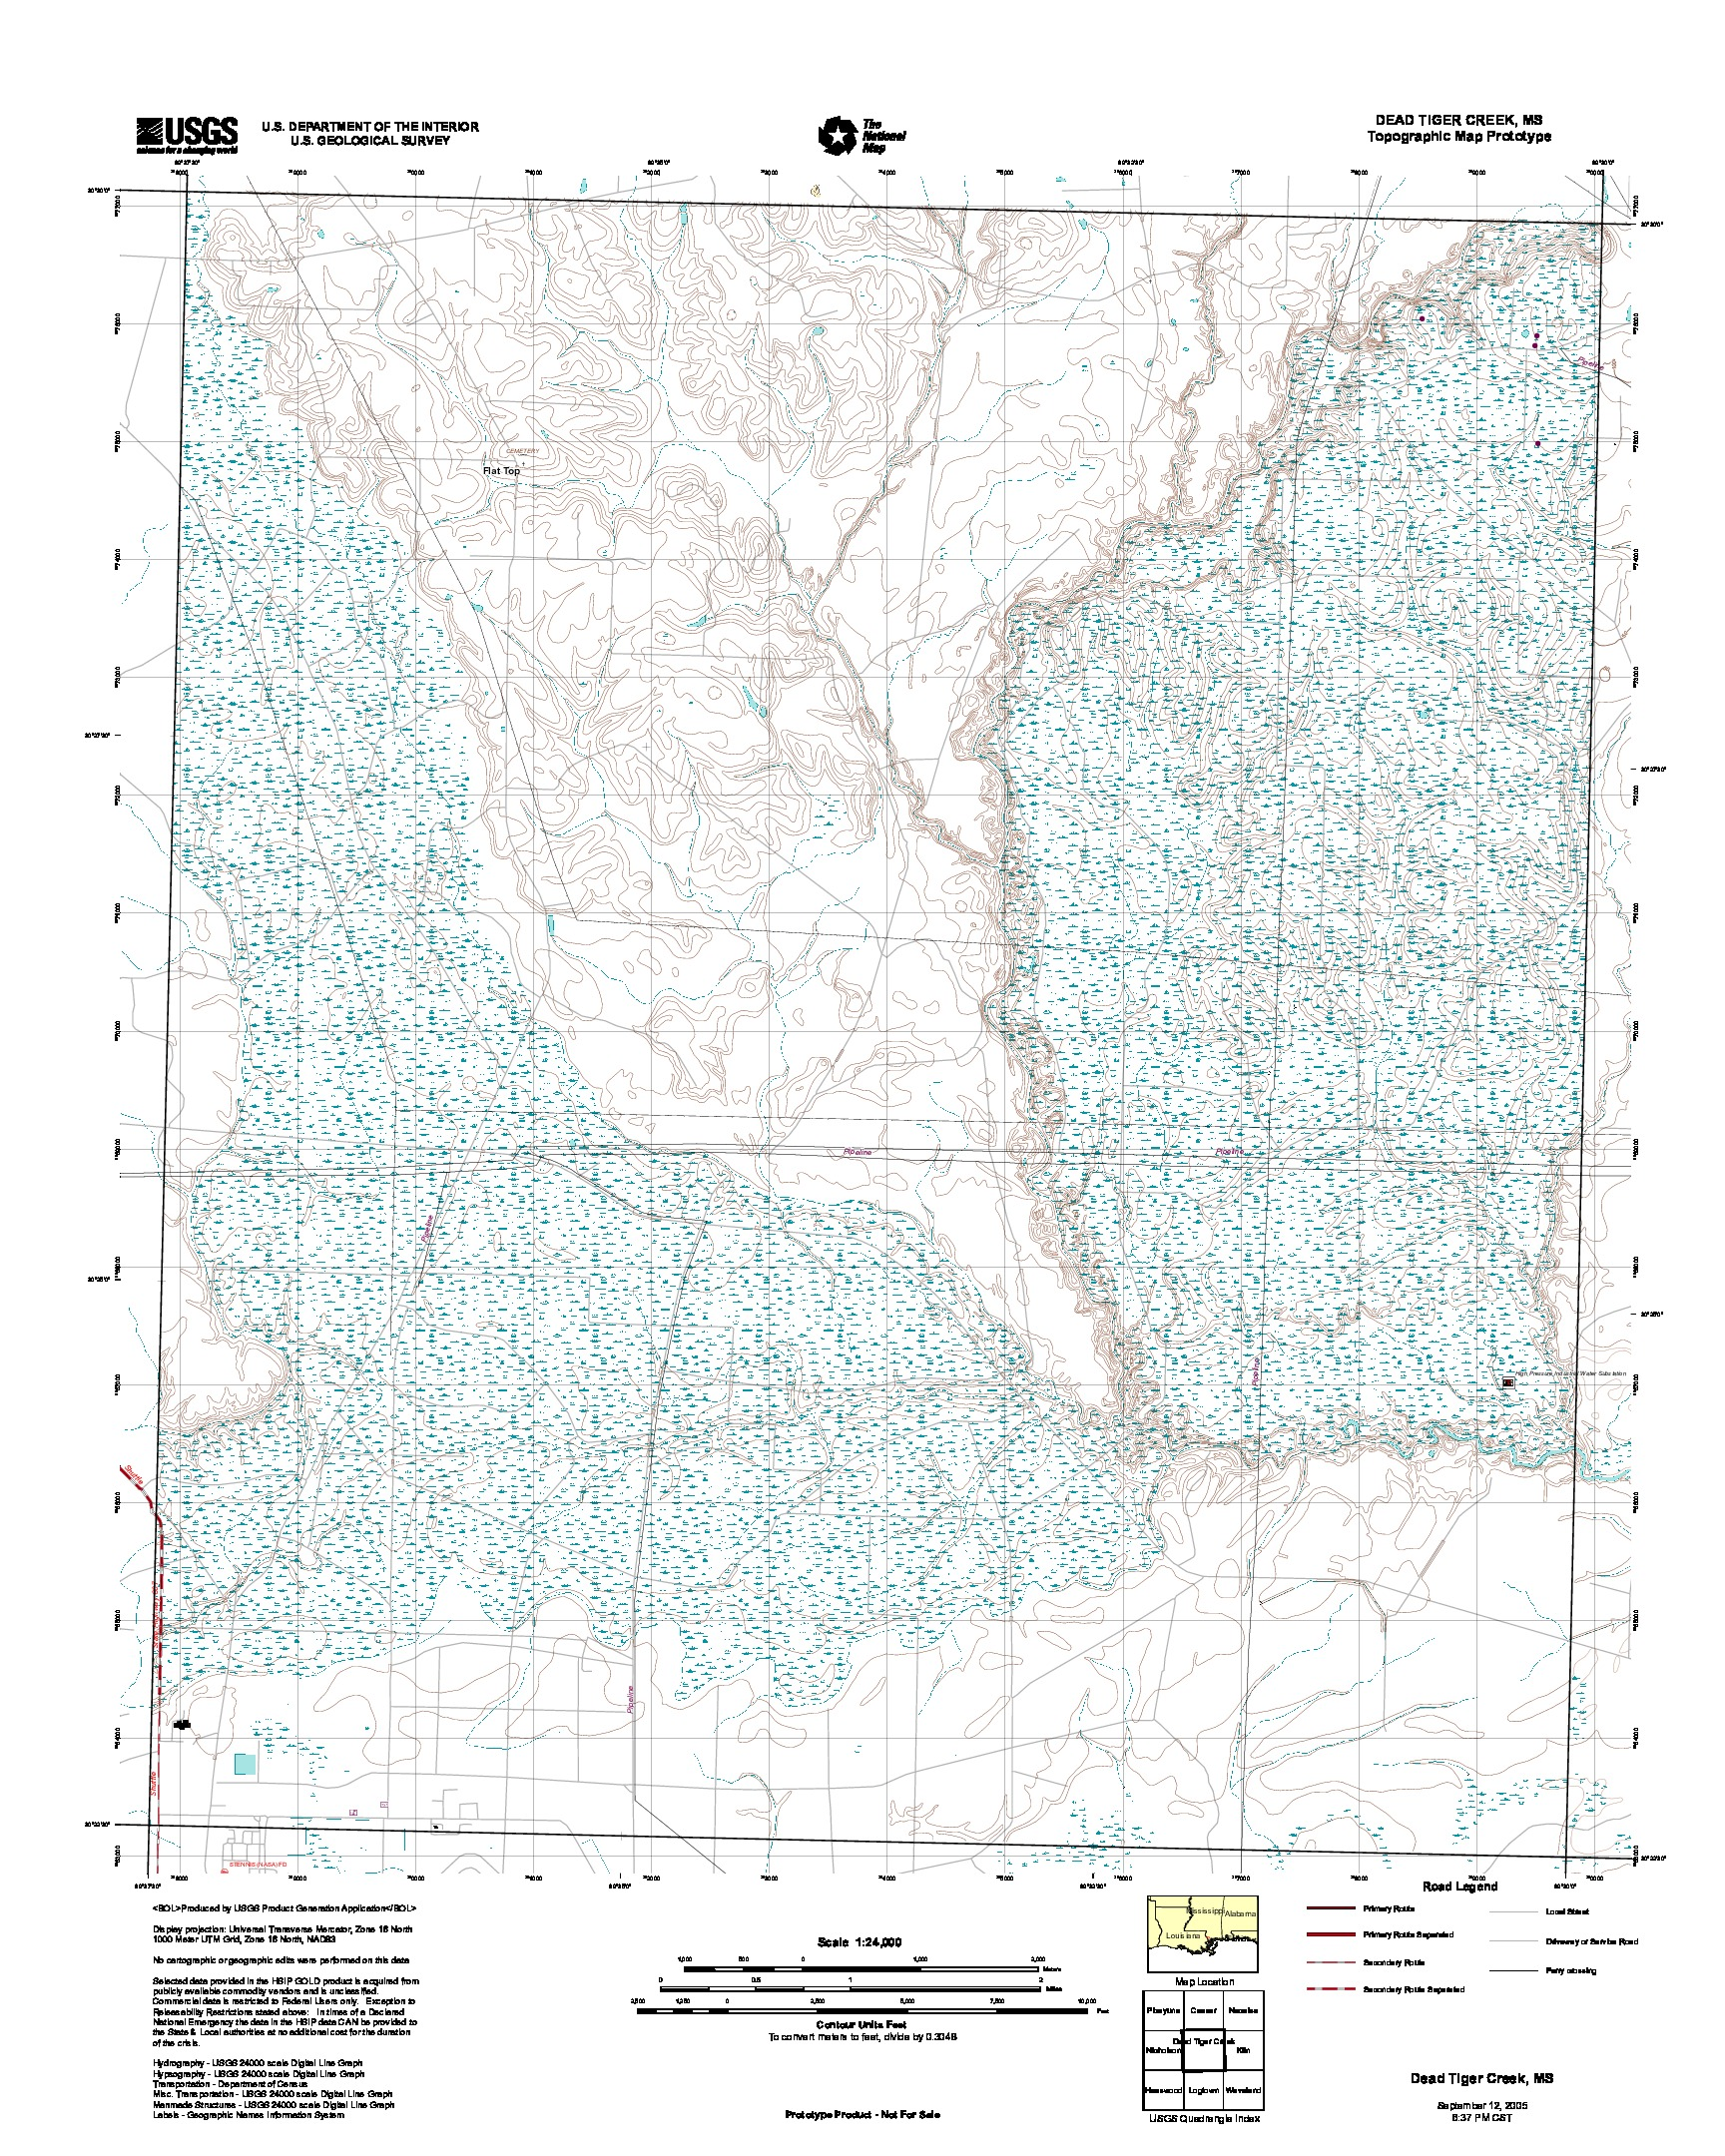 Dead Tiger Creek, Topographic Map Prototype, Mississippi, United States, September 12, 2005